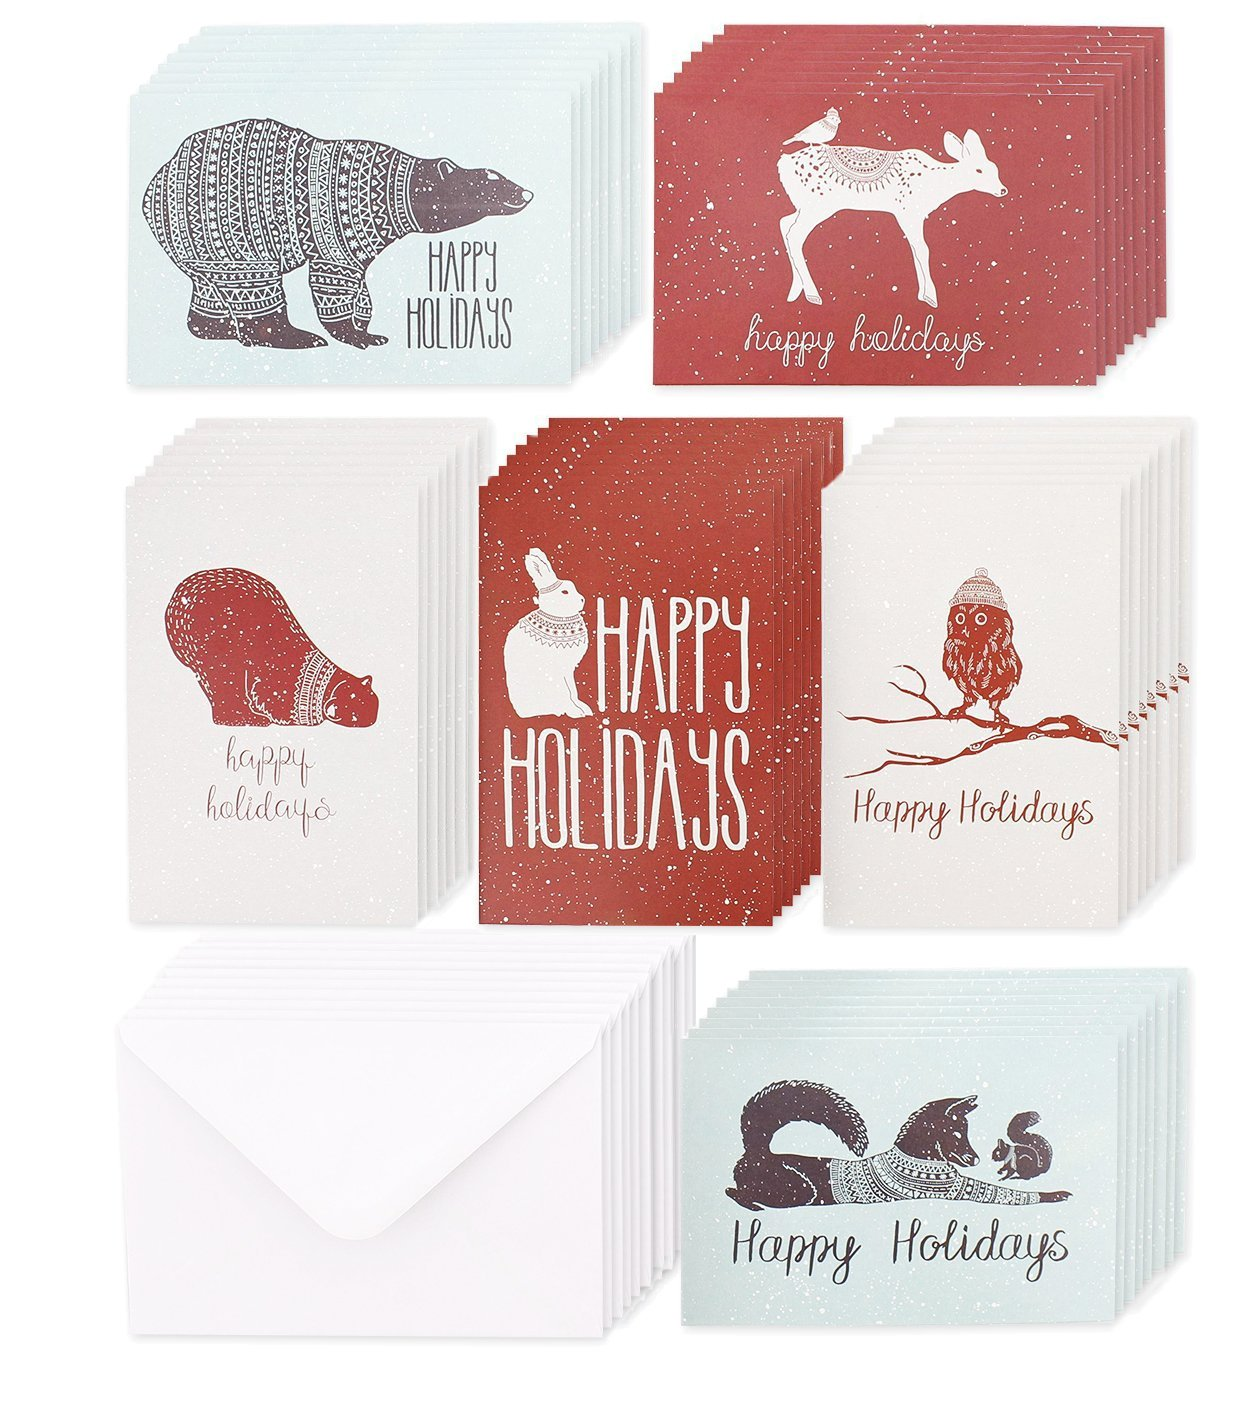 Amazon.com : 48 Pack Christmas Greeting Cards - 6 Assorted Winter ...